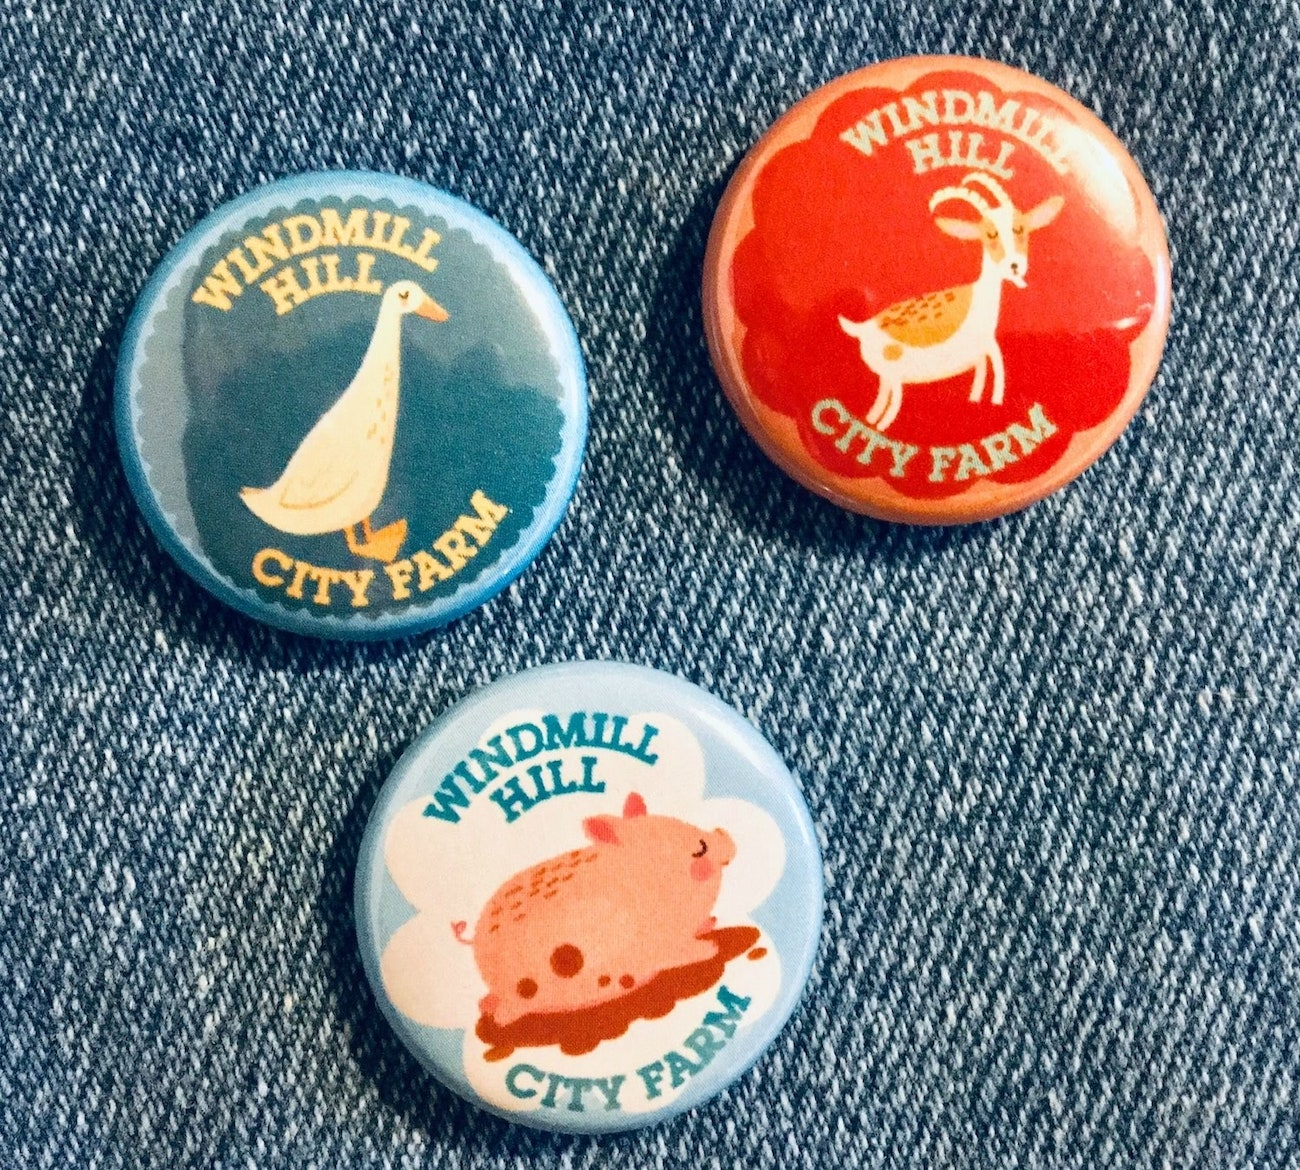 Windmill Hill City farm illustrated badges